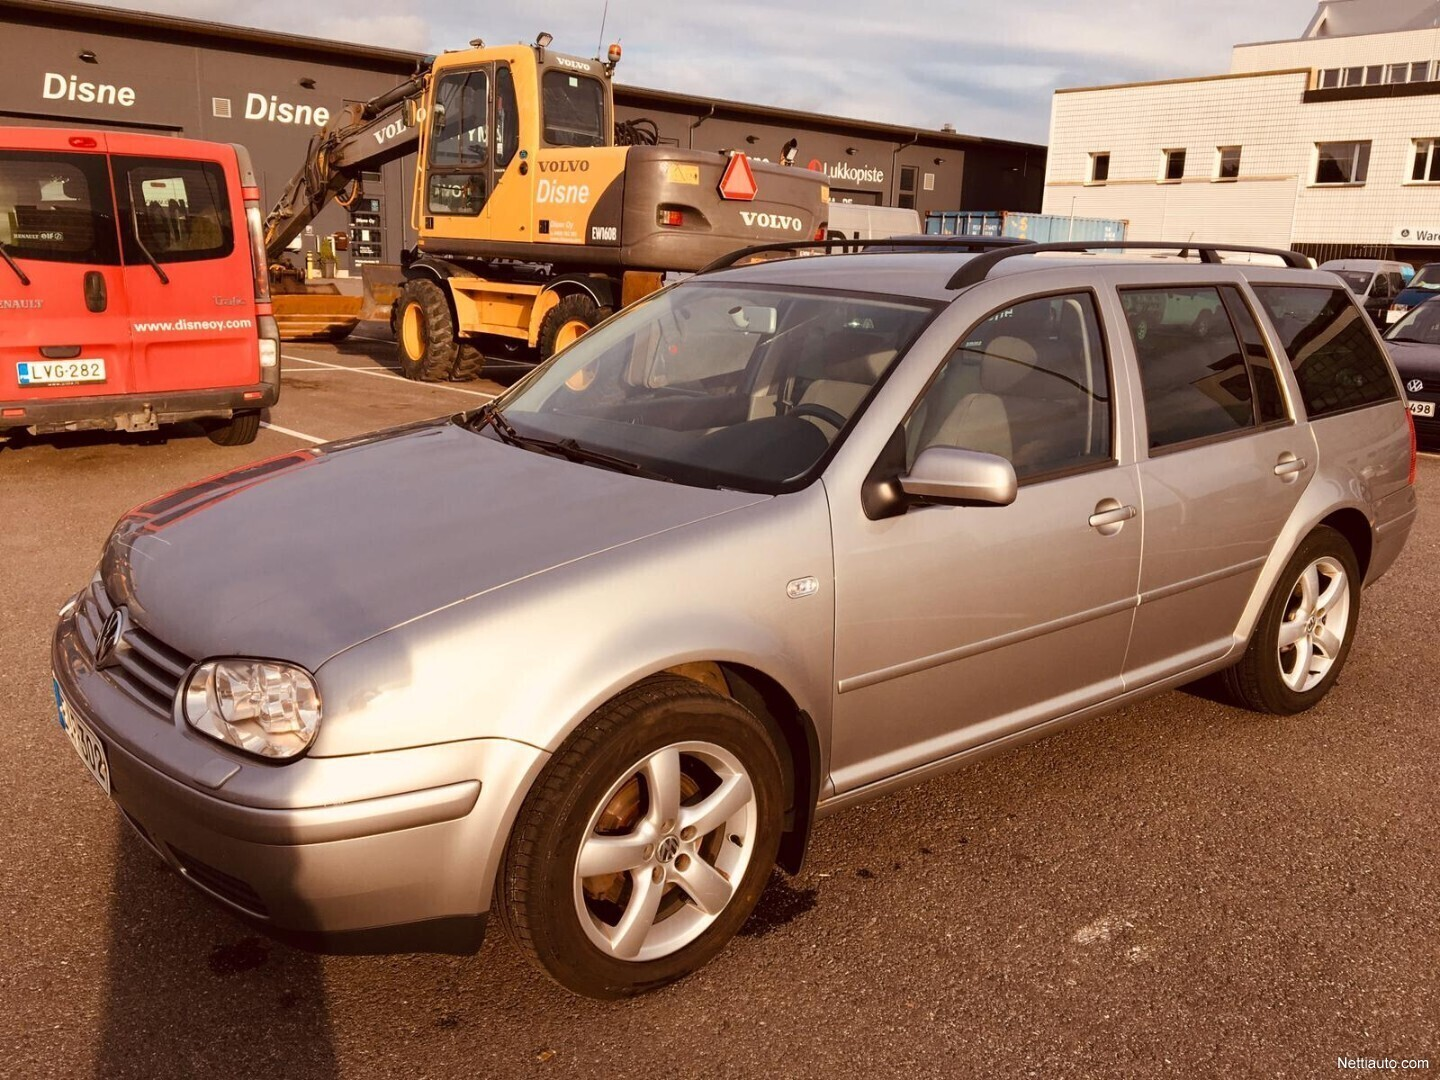 Hubcap Tire And Wheel >> Volkswagen Golf 1 6 Firstline Variant A